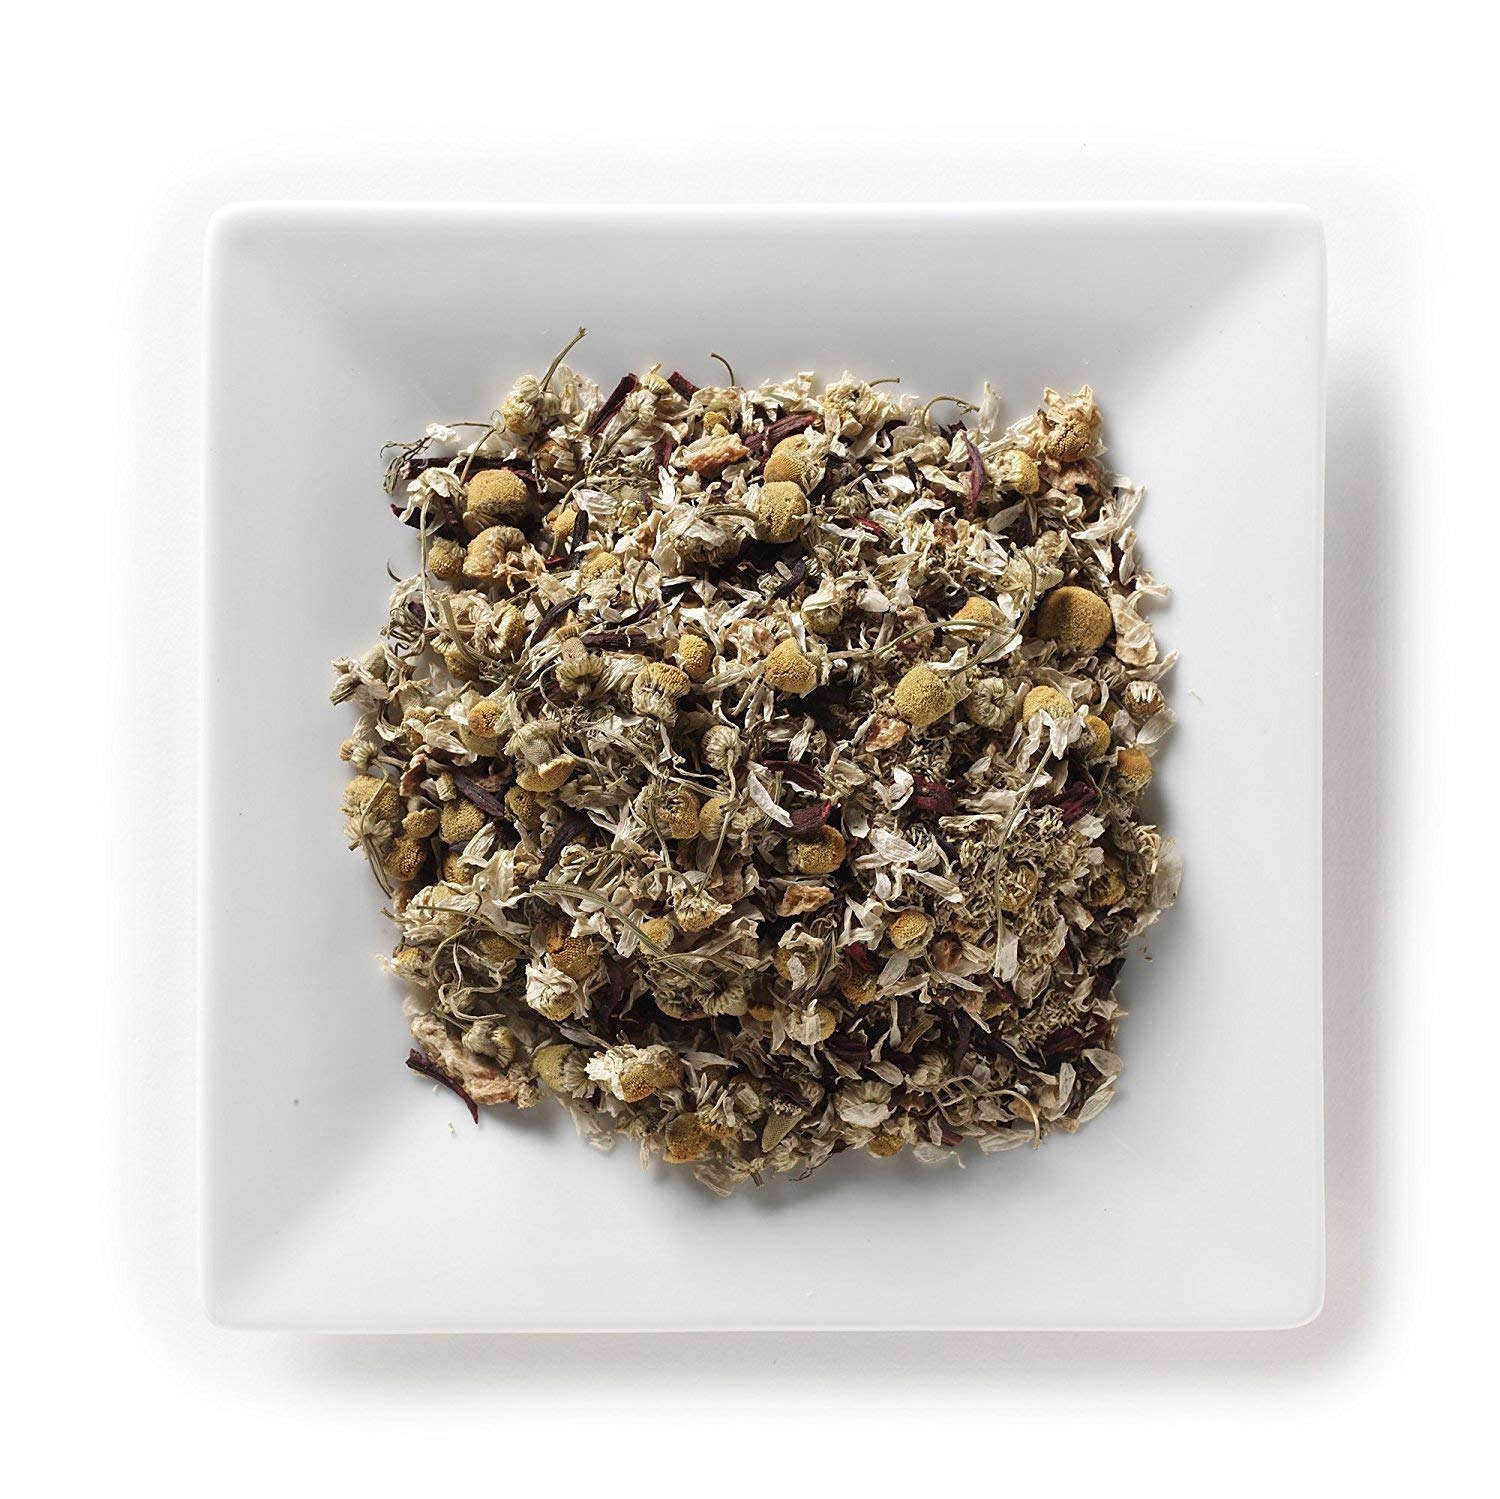 Mahamosa Lemon Chamomile Tea 2 oz - Loose Leaf Herbal Flower Tea Blend (with chamomile, lemon peel, hibiscus, lemon flavor)